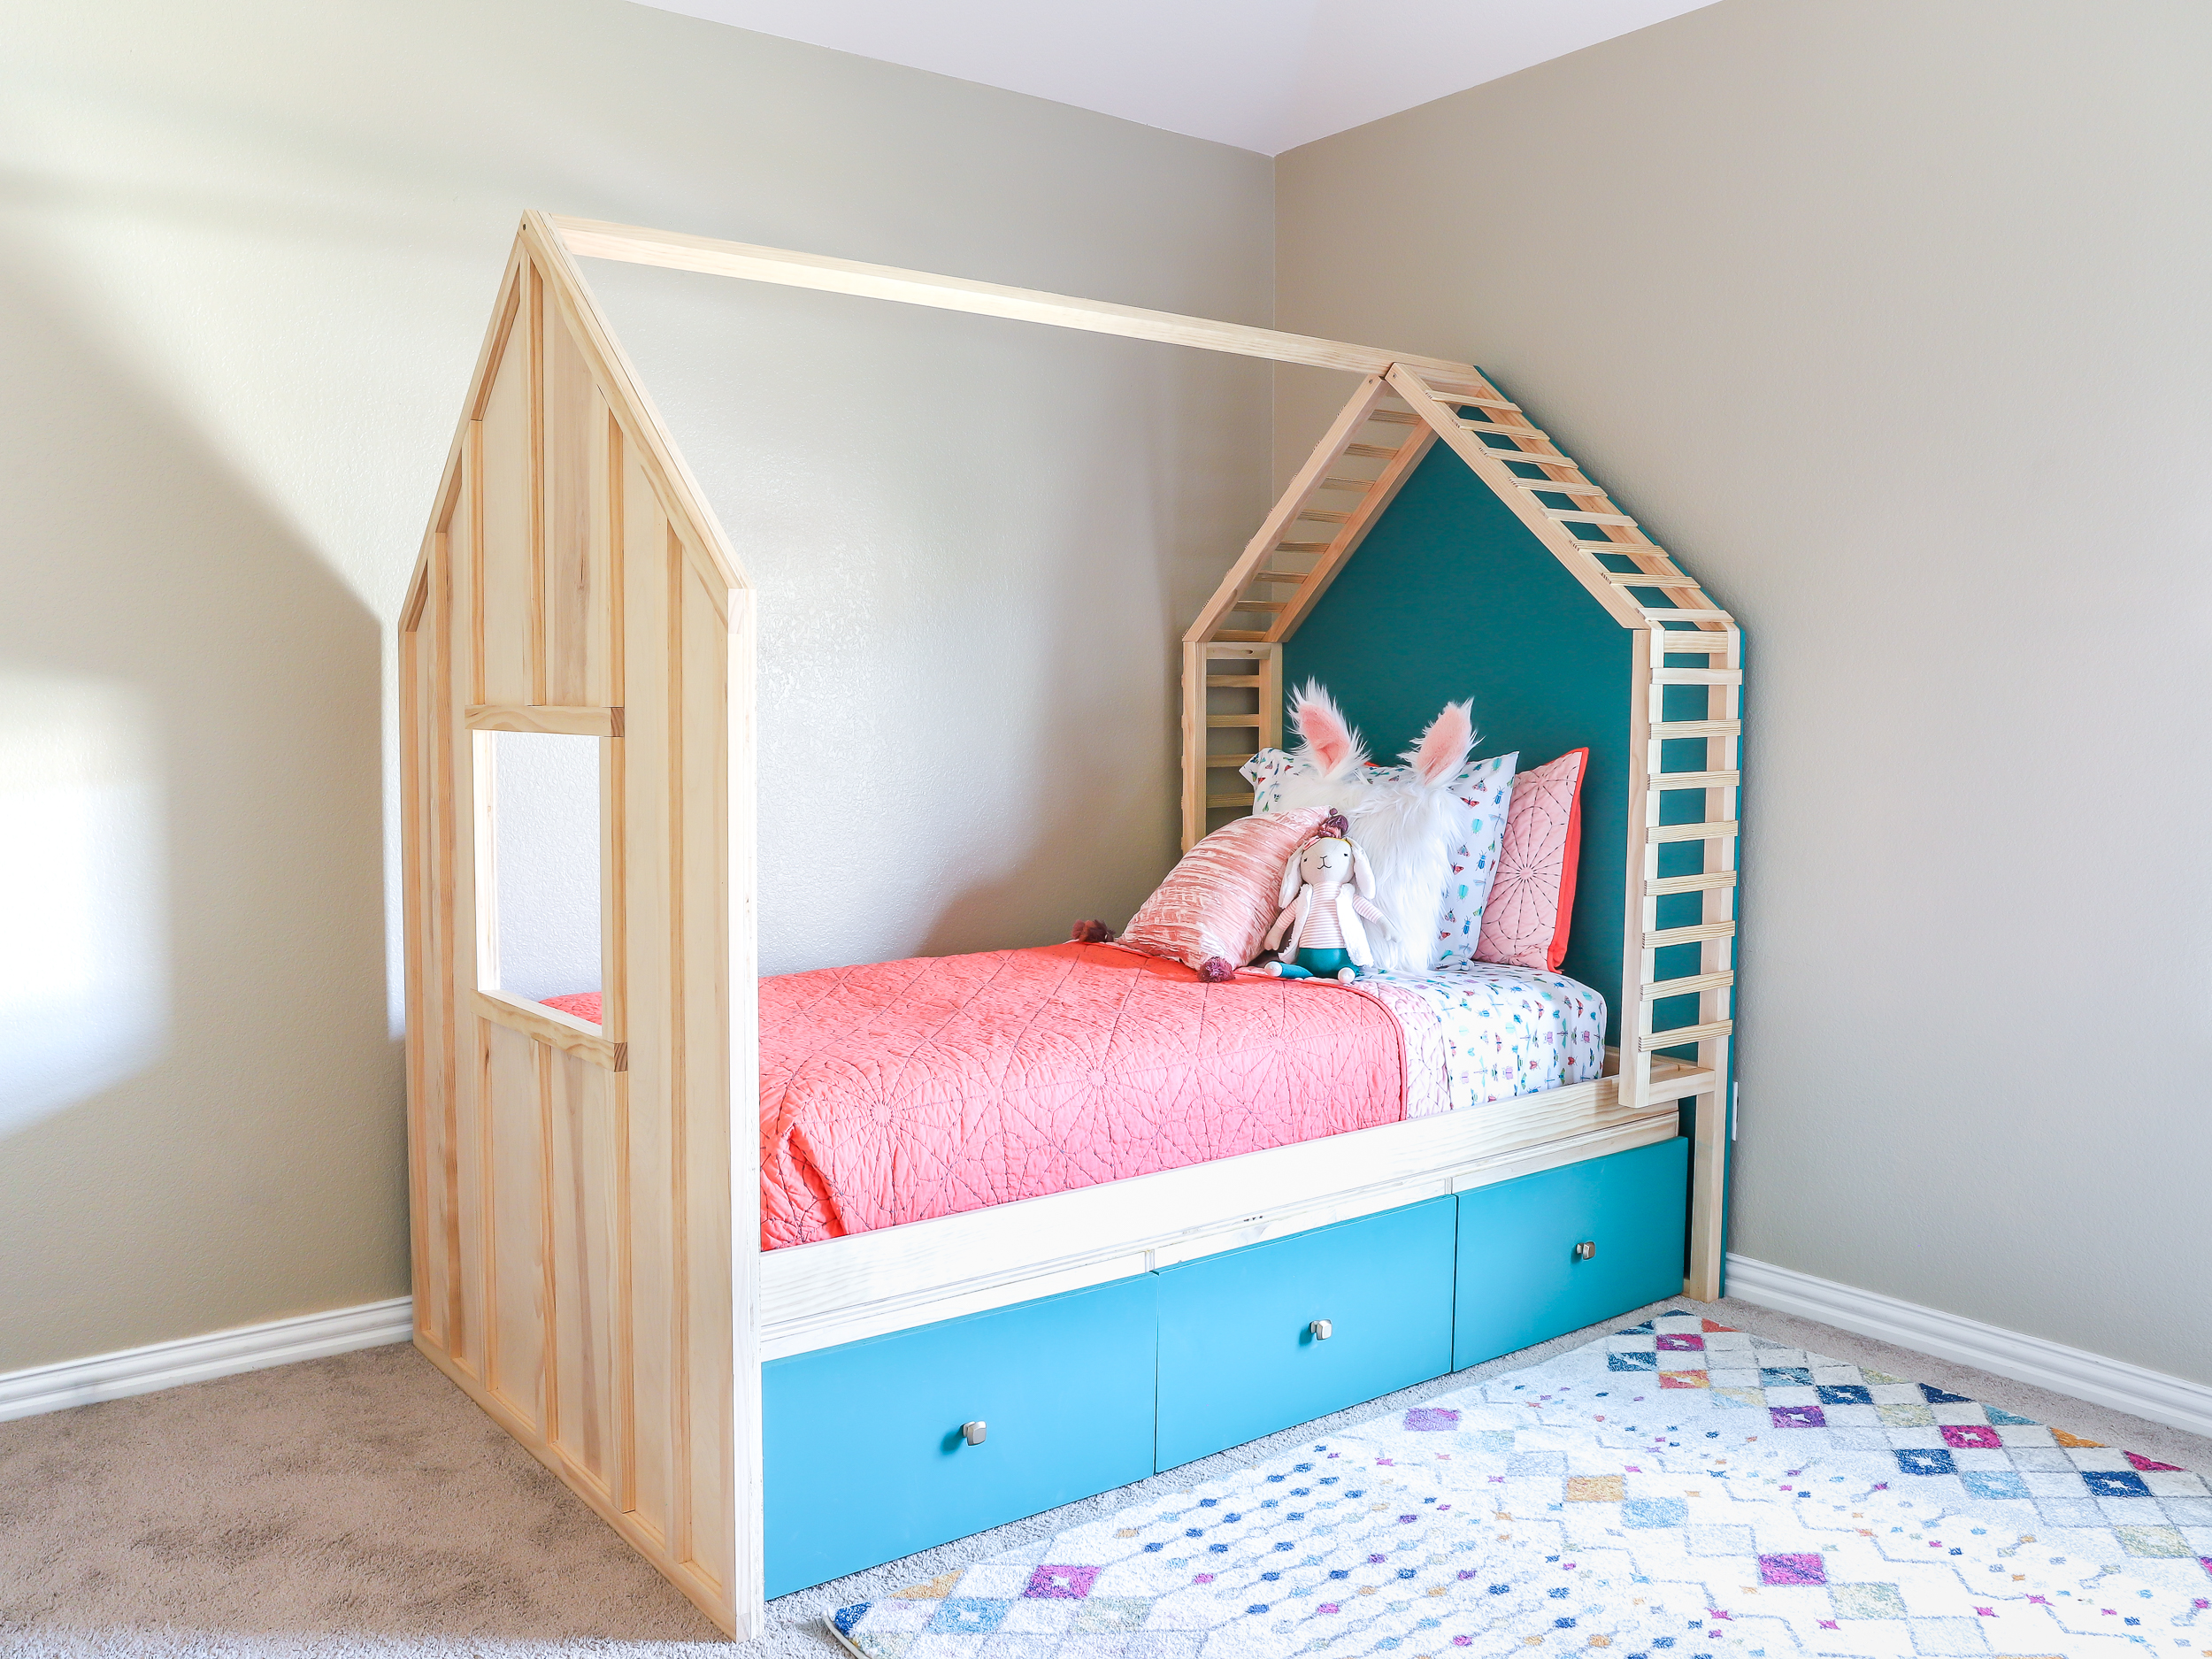 Kid's House Bed with Storage (Twin Size) - Spruc*d Market